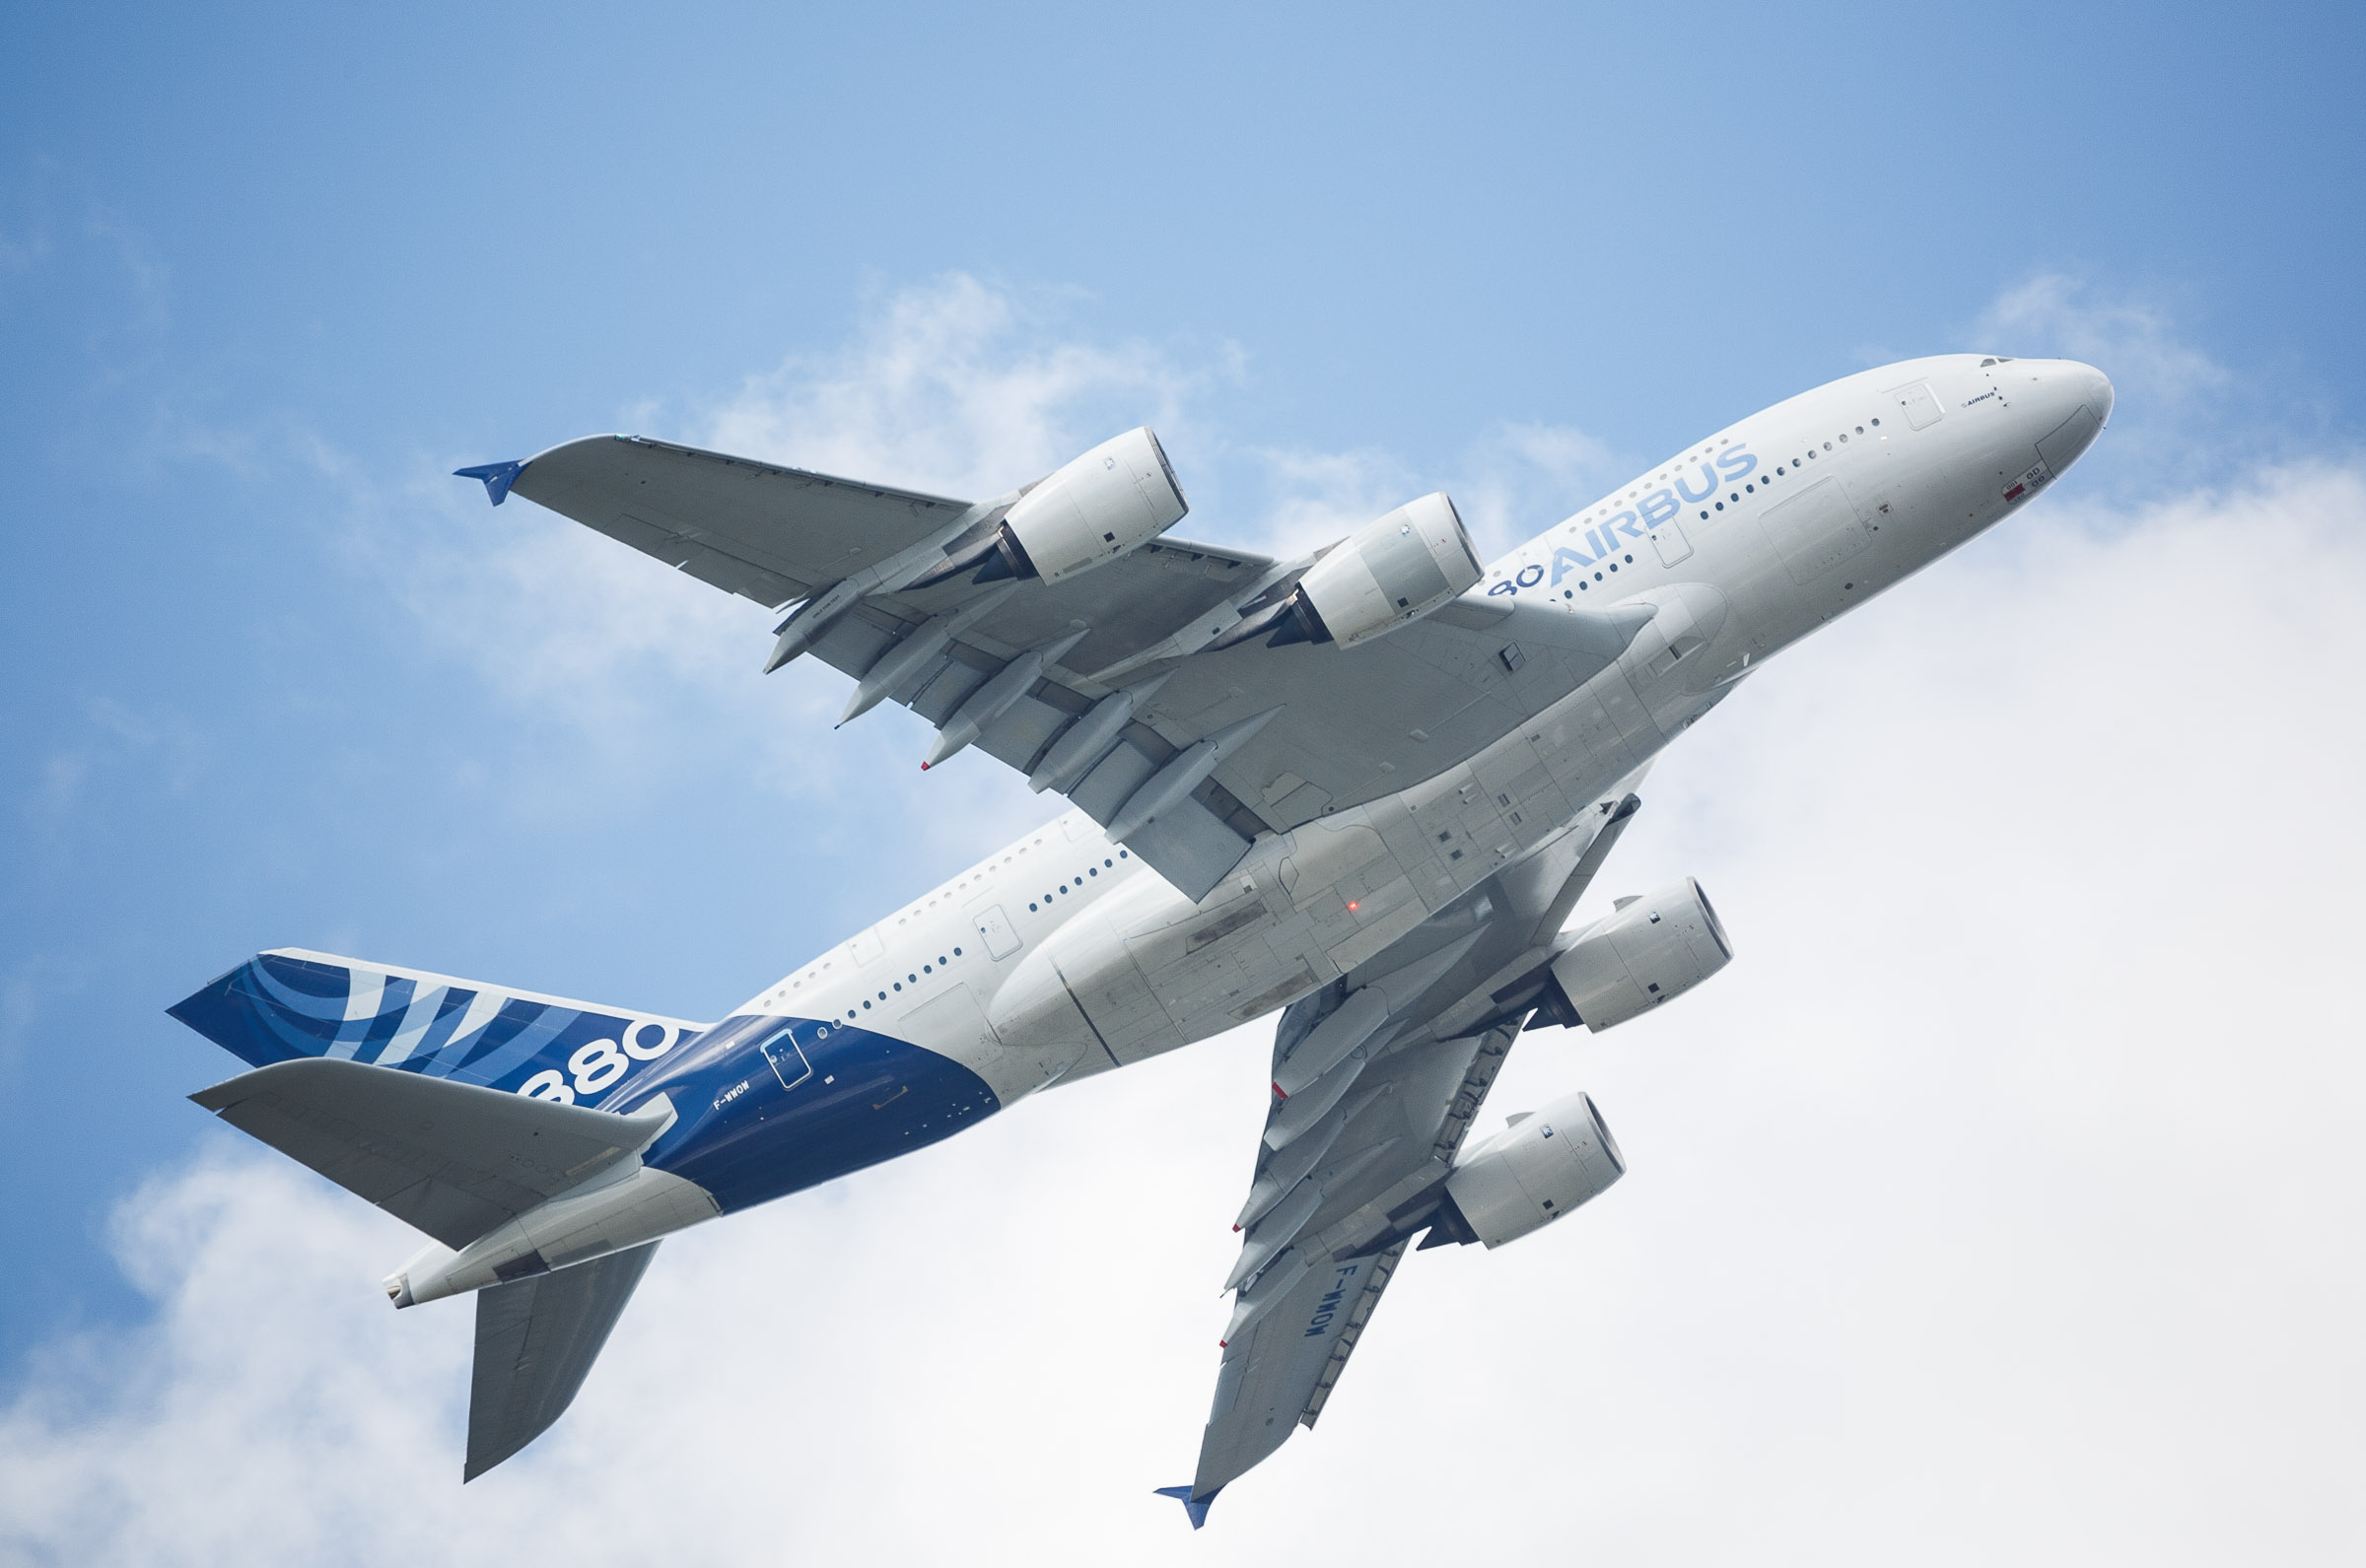 An Airbus A380-800 ascends steeply at the Farnborough International Airshow in the UK.